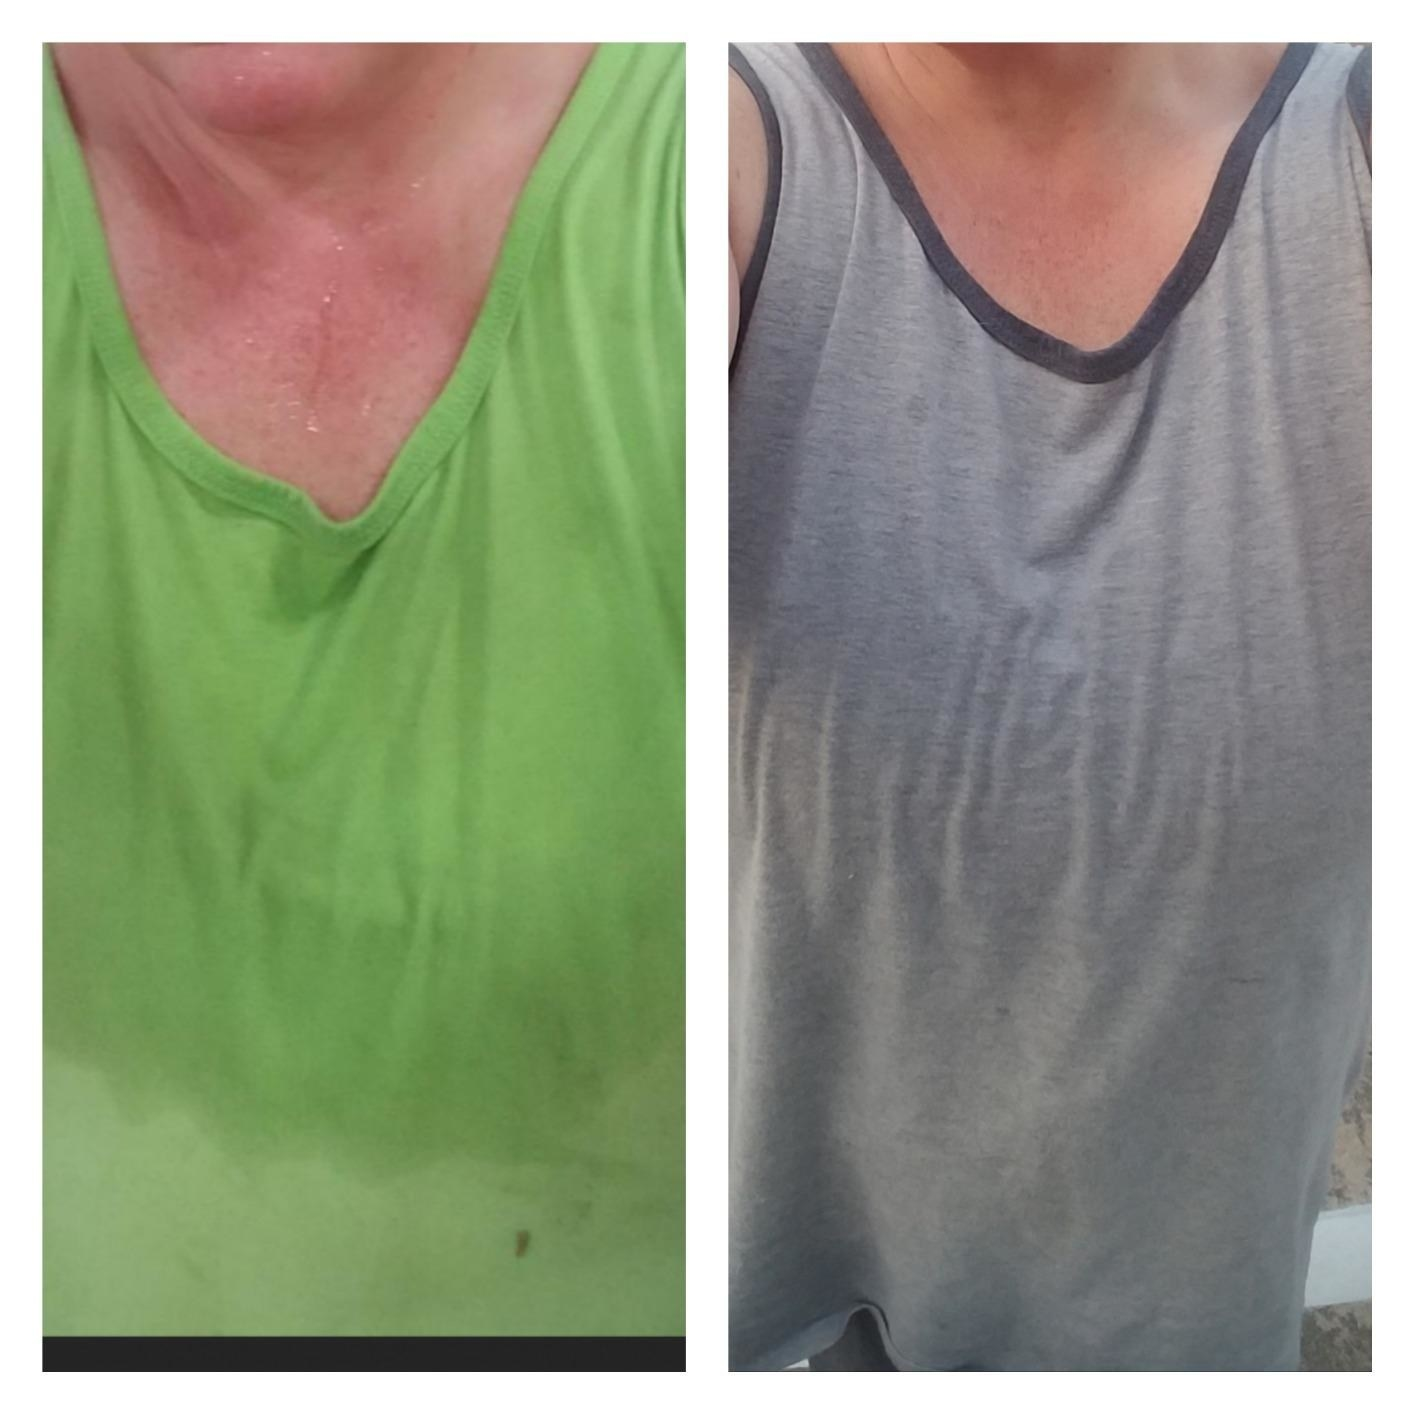 reviewer showing how sweaty they were in a green shirt and then after using the wipes with no sweat in a grey shirt